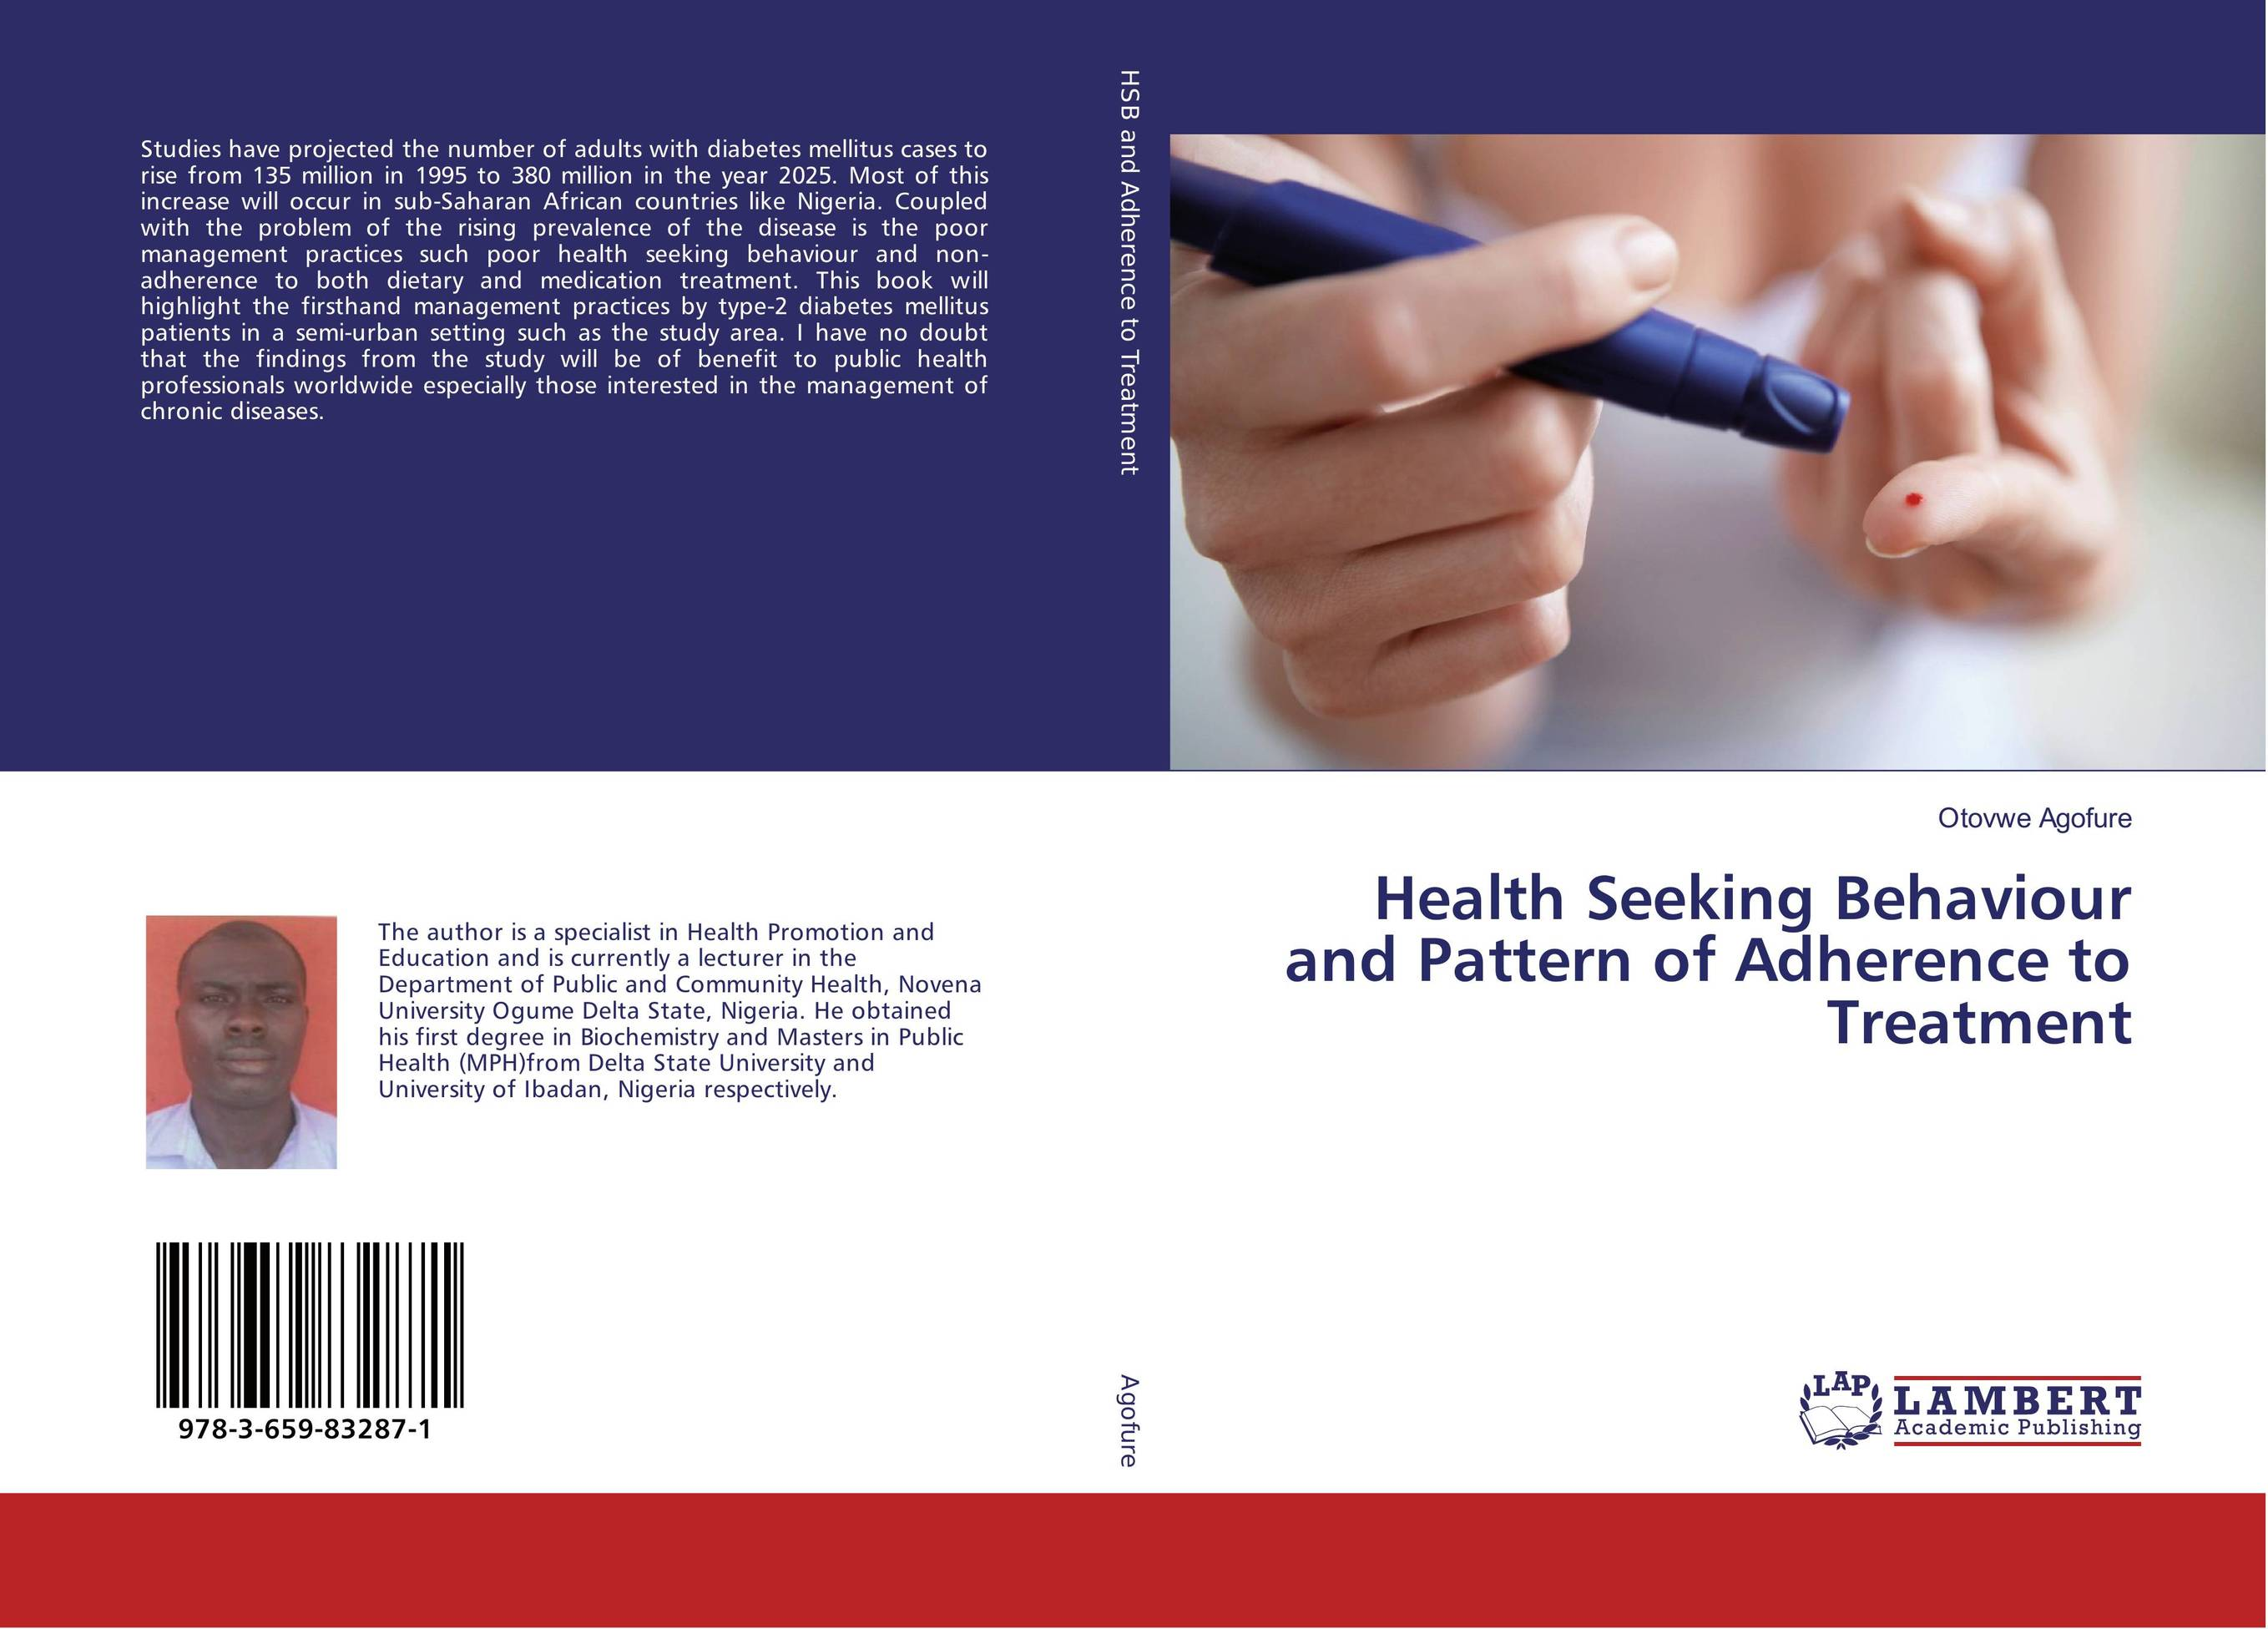 Health Seeking Behaviour and Pattern of Adherence to Treatment prostate health devices is prostate removal prostatitis mainly for the prostate health and prostatitis health capsule